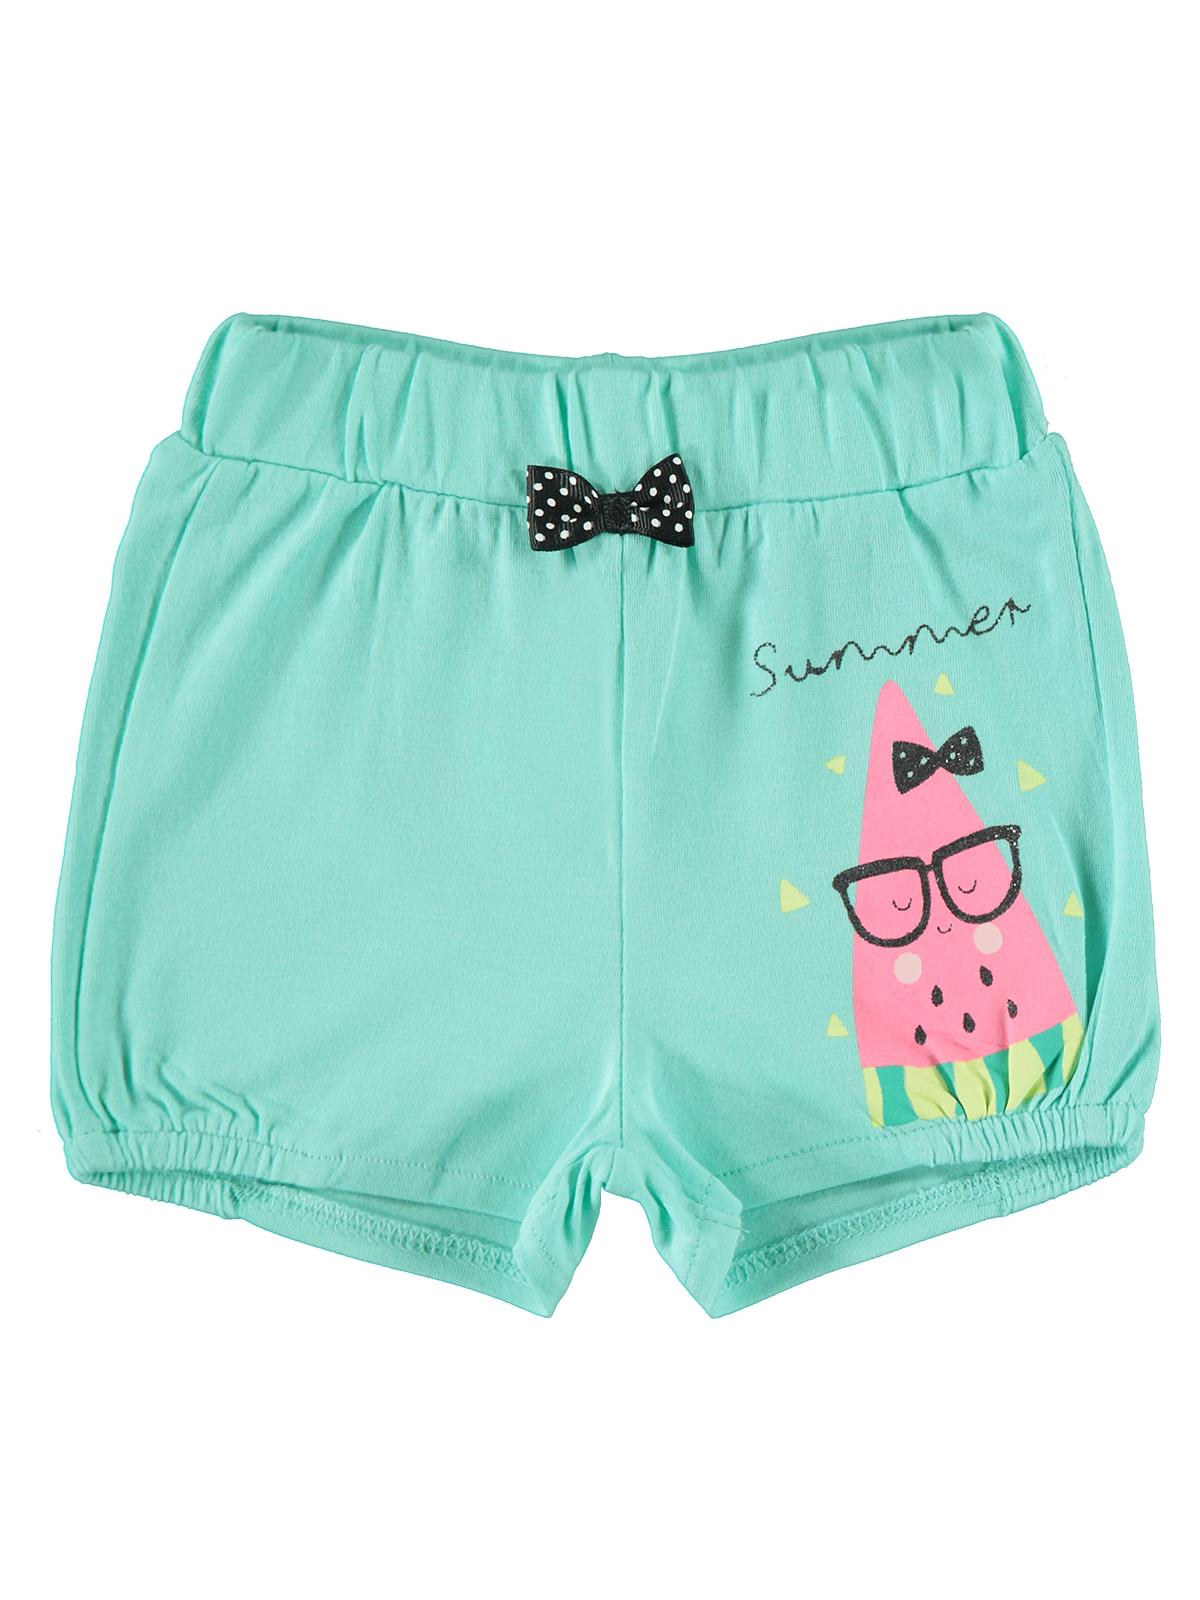 Summer Clothes Product Fashion Colorful Comfortable Stylish Civil Baby Girl Shorts 6-18 Months 38587 A839Y01